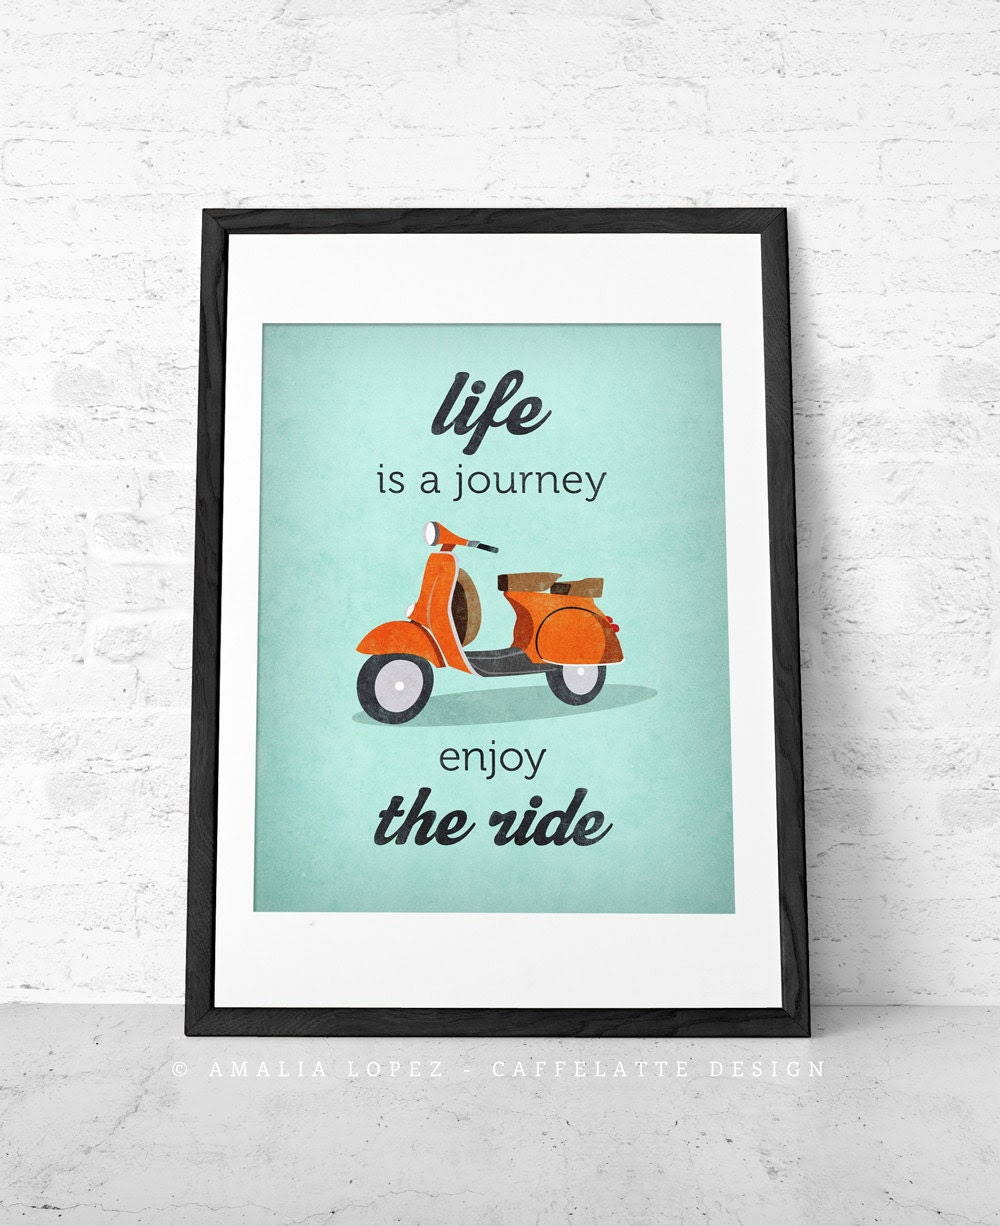 Popular items for quote poster on Etsy